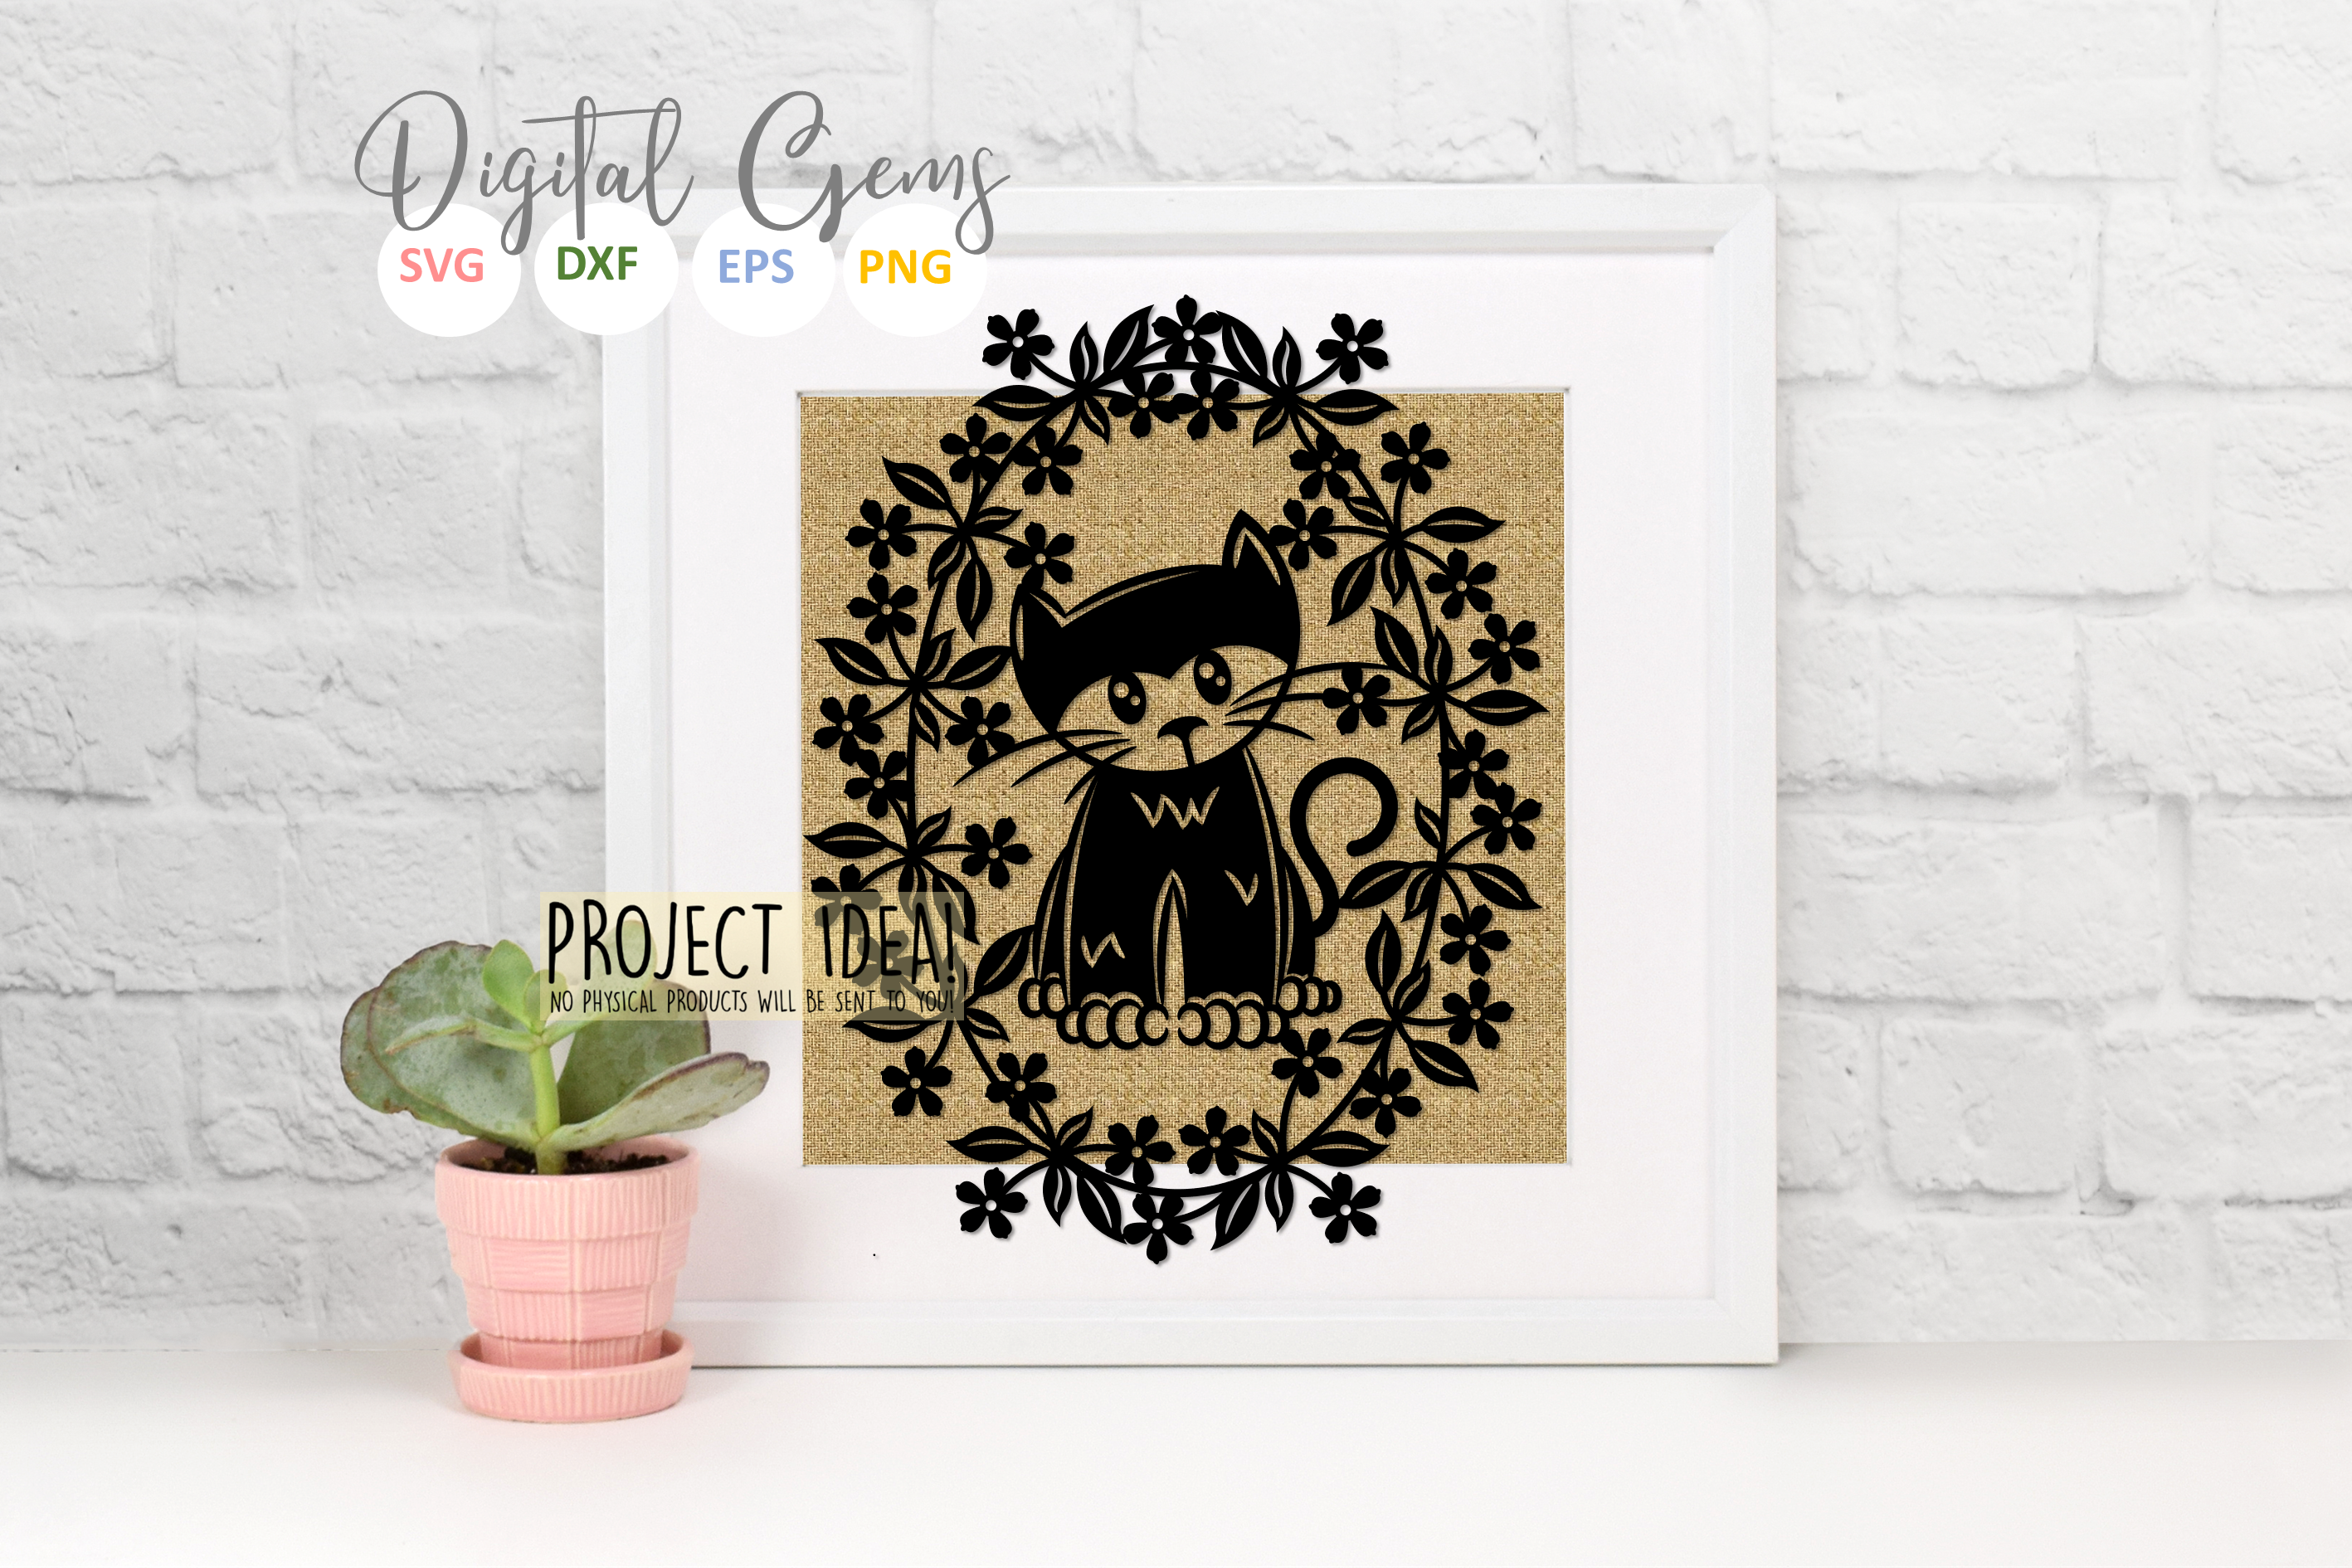 Cat paper cut design SVG / DXF / EPS / PNG files example image 7